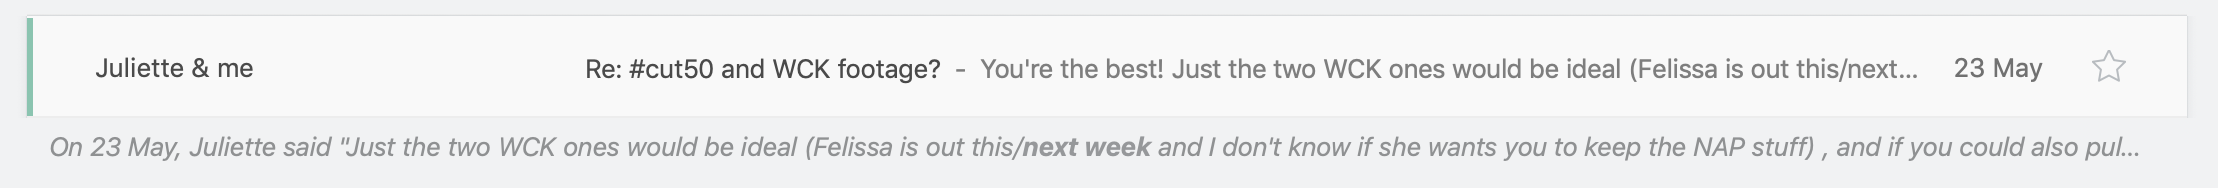 Here's the Recap feature at working, letting me know there's a deadline in this email